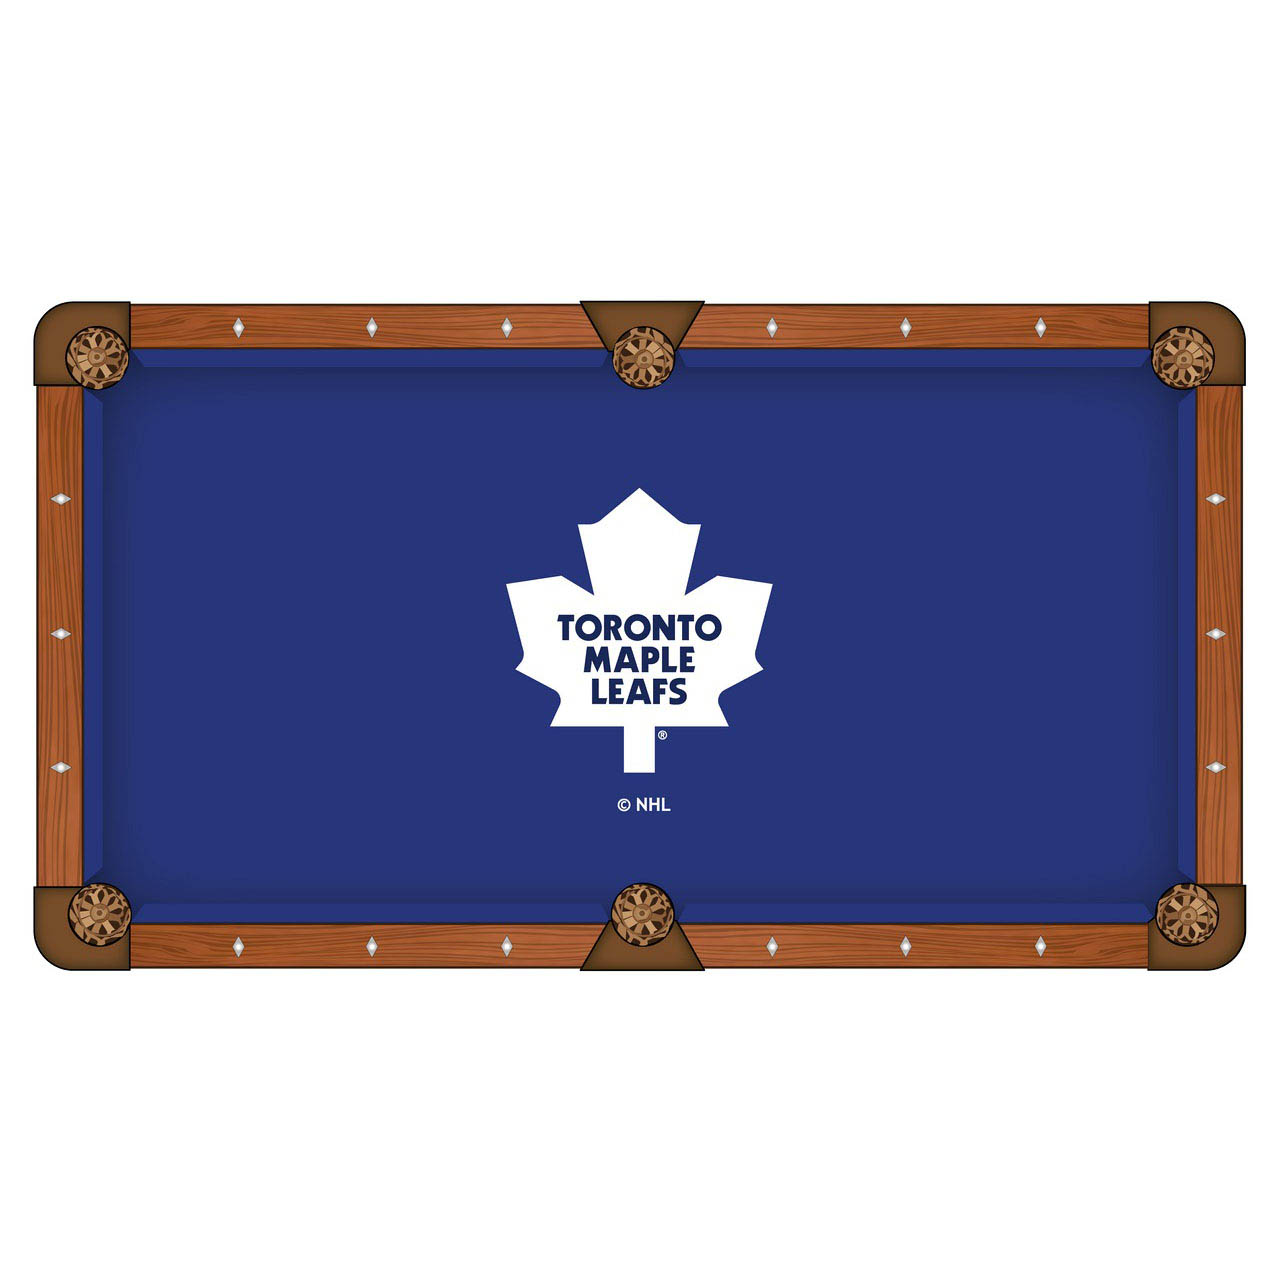 Stunning Toronto-Leafs-Pool-Table-Cloth Product Picture 578